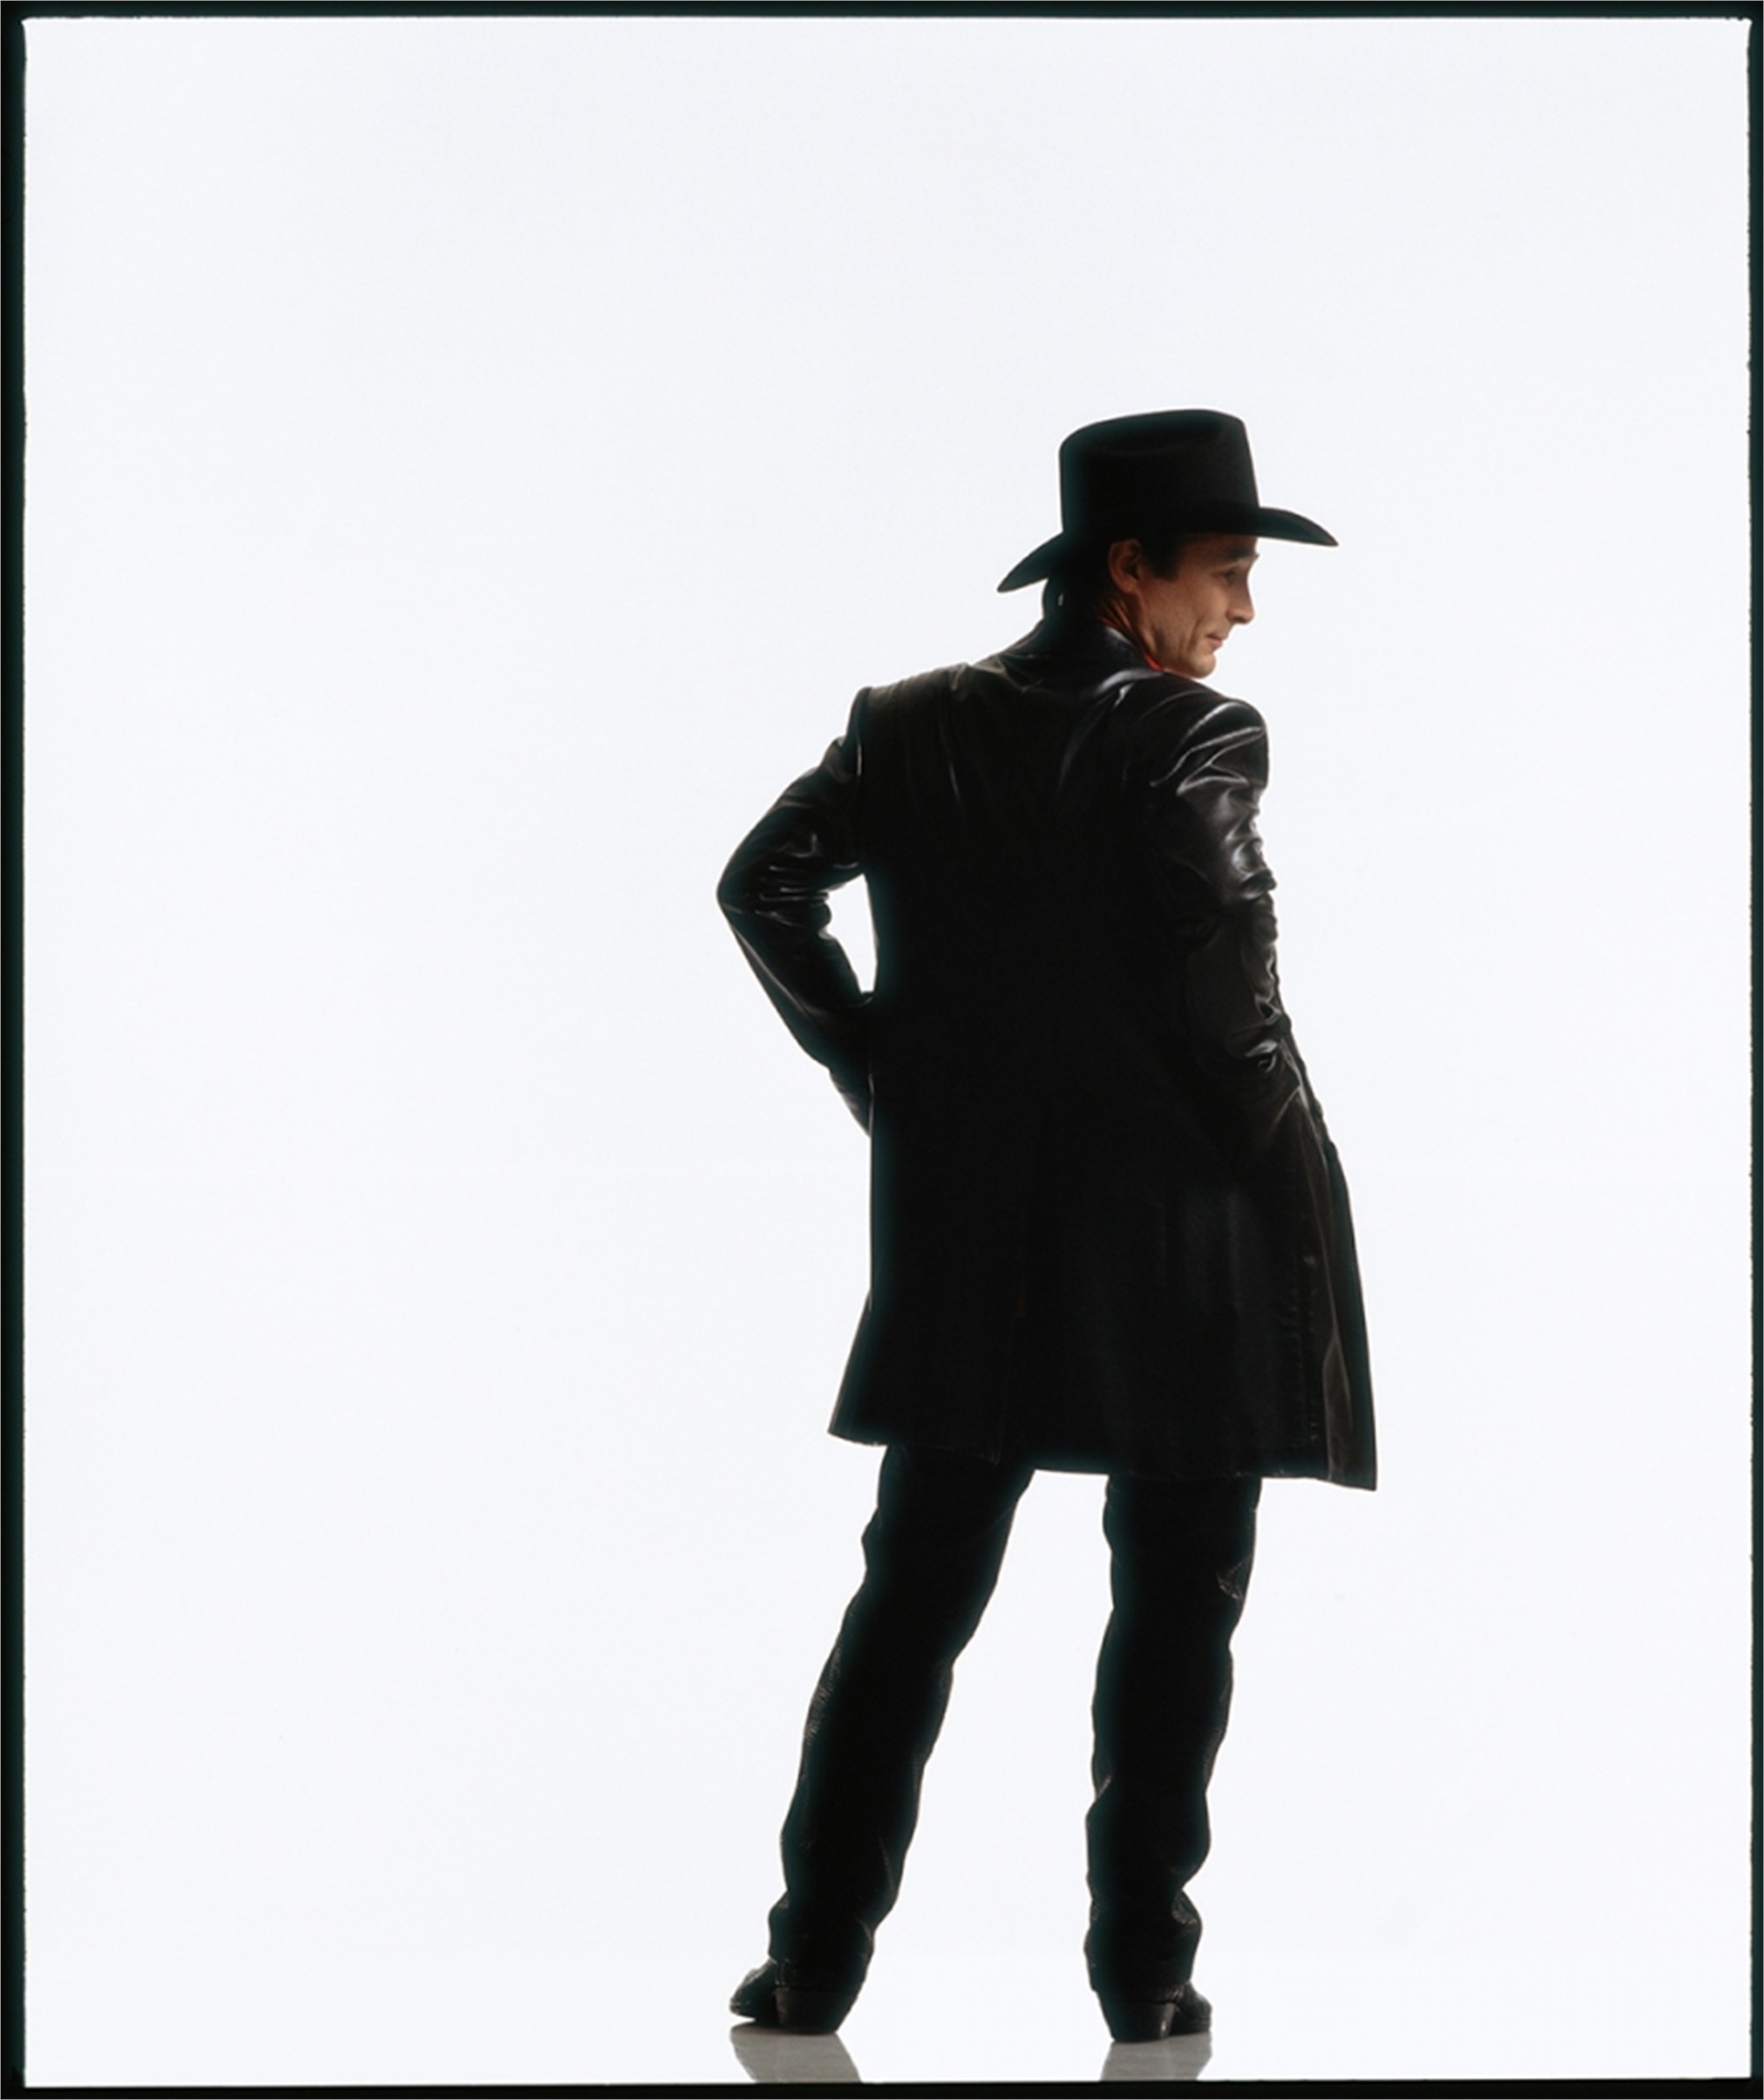 99039 Clint Black on White Seamless Color by Timothy White